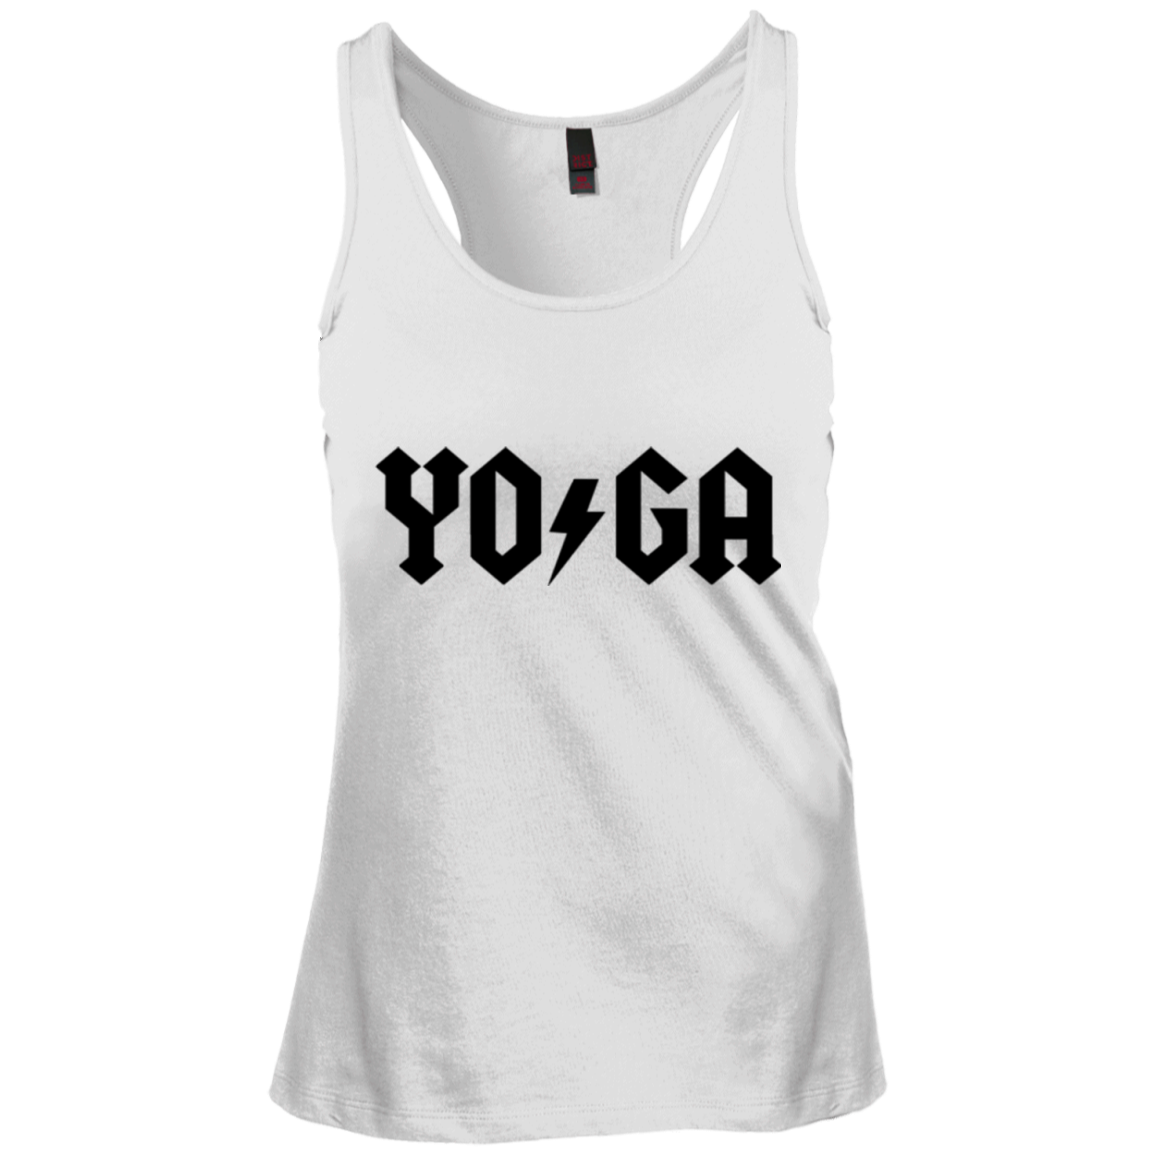 Yoga Lightning Bolt / District Junior's Racerback Tank Top